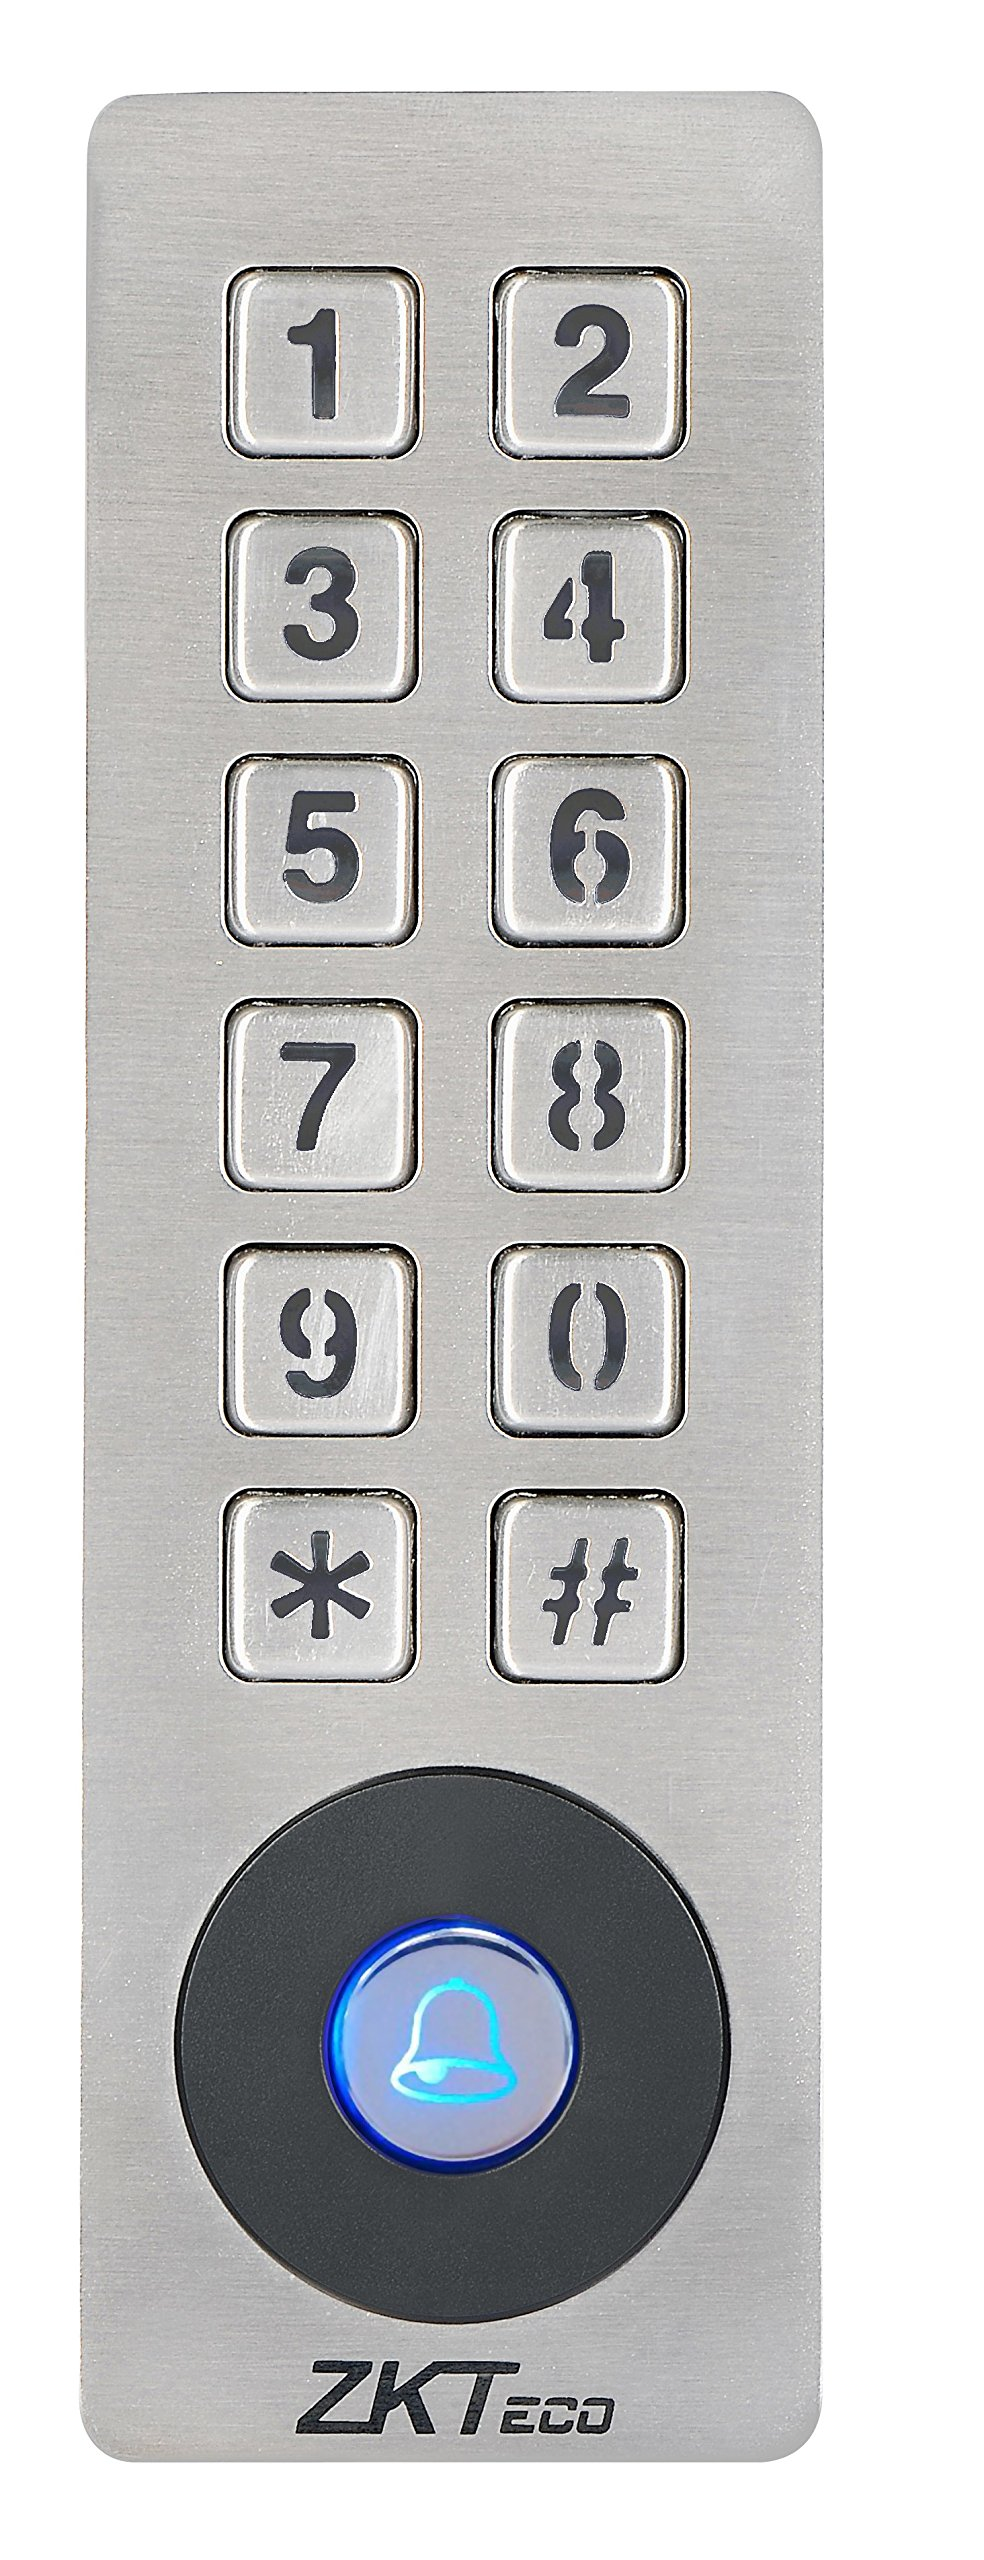 ZKTeco Waterproof Access Control Keypad 125KHz RFID Door Access Controller Home Security System with Metal Shell and Keypad